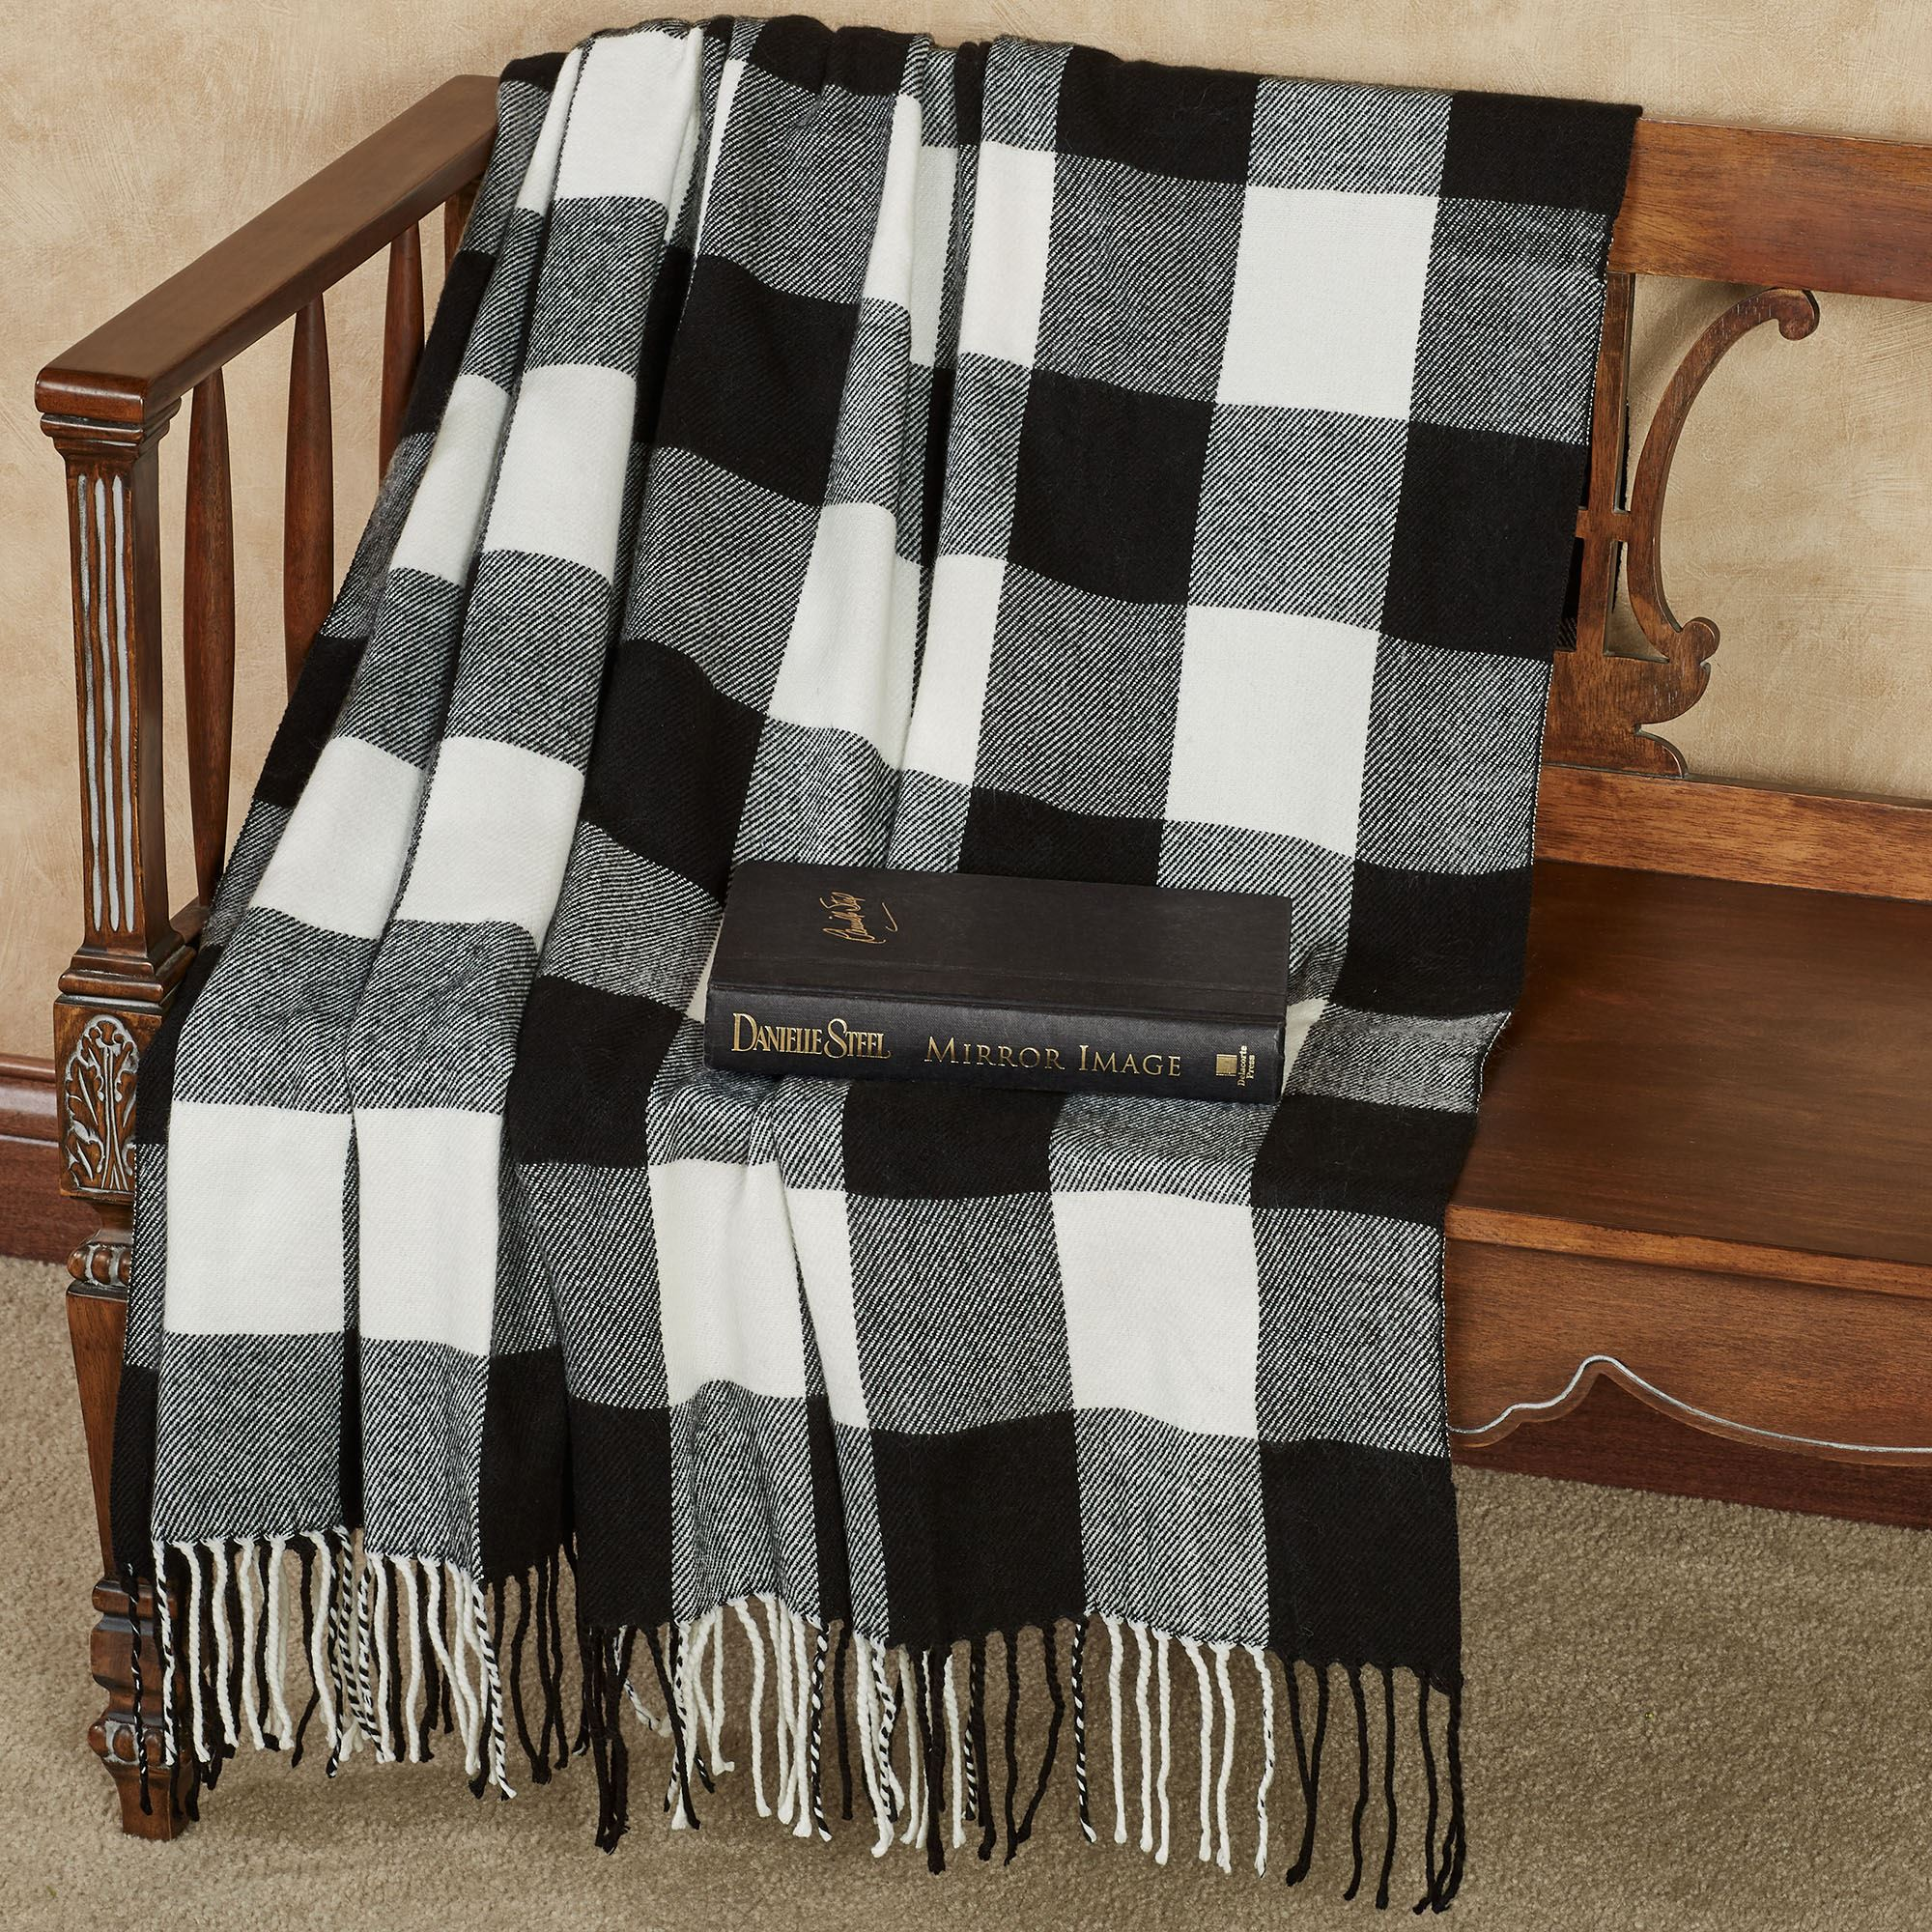 Rustic Buffalo Plaid Black and White Throw Blanket or Pillows